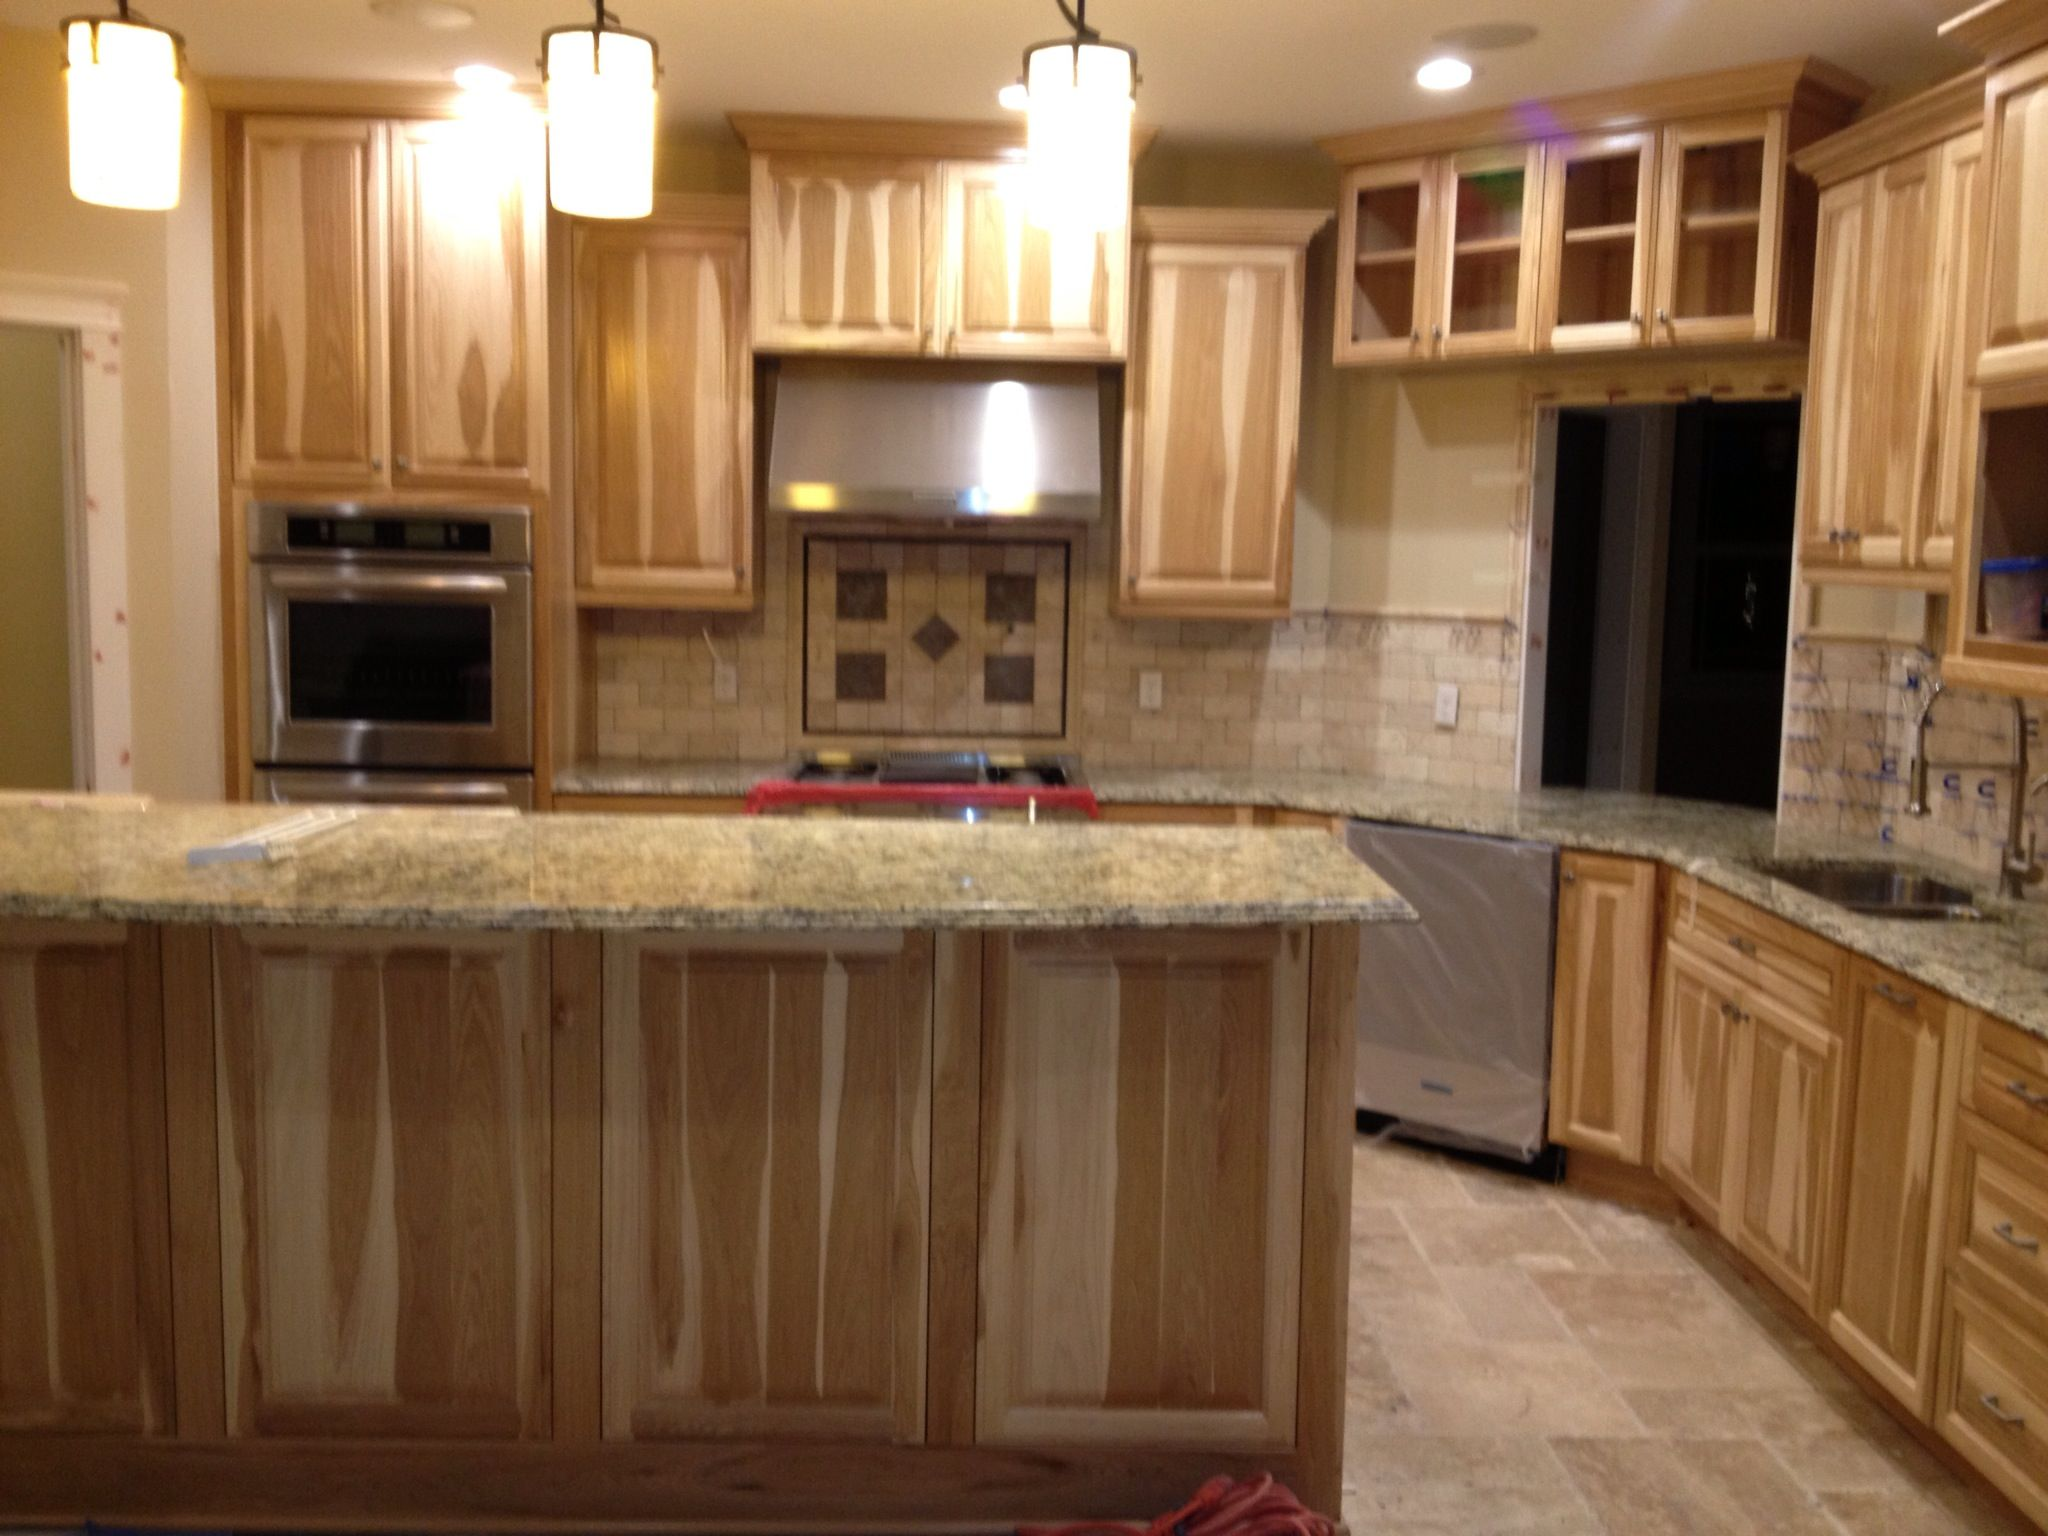 Kitchen With Hickory Cabinets And Travertine Backsplash With Granite Countertops